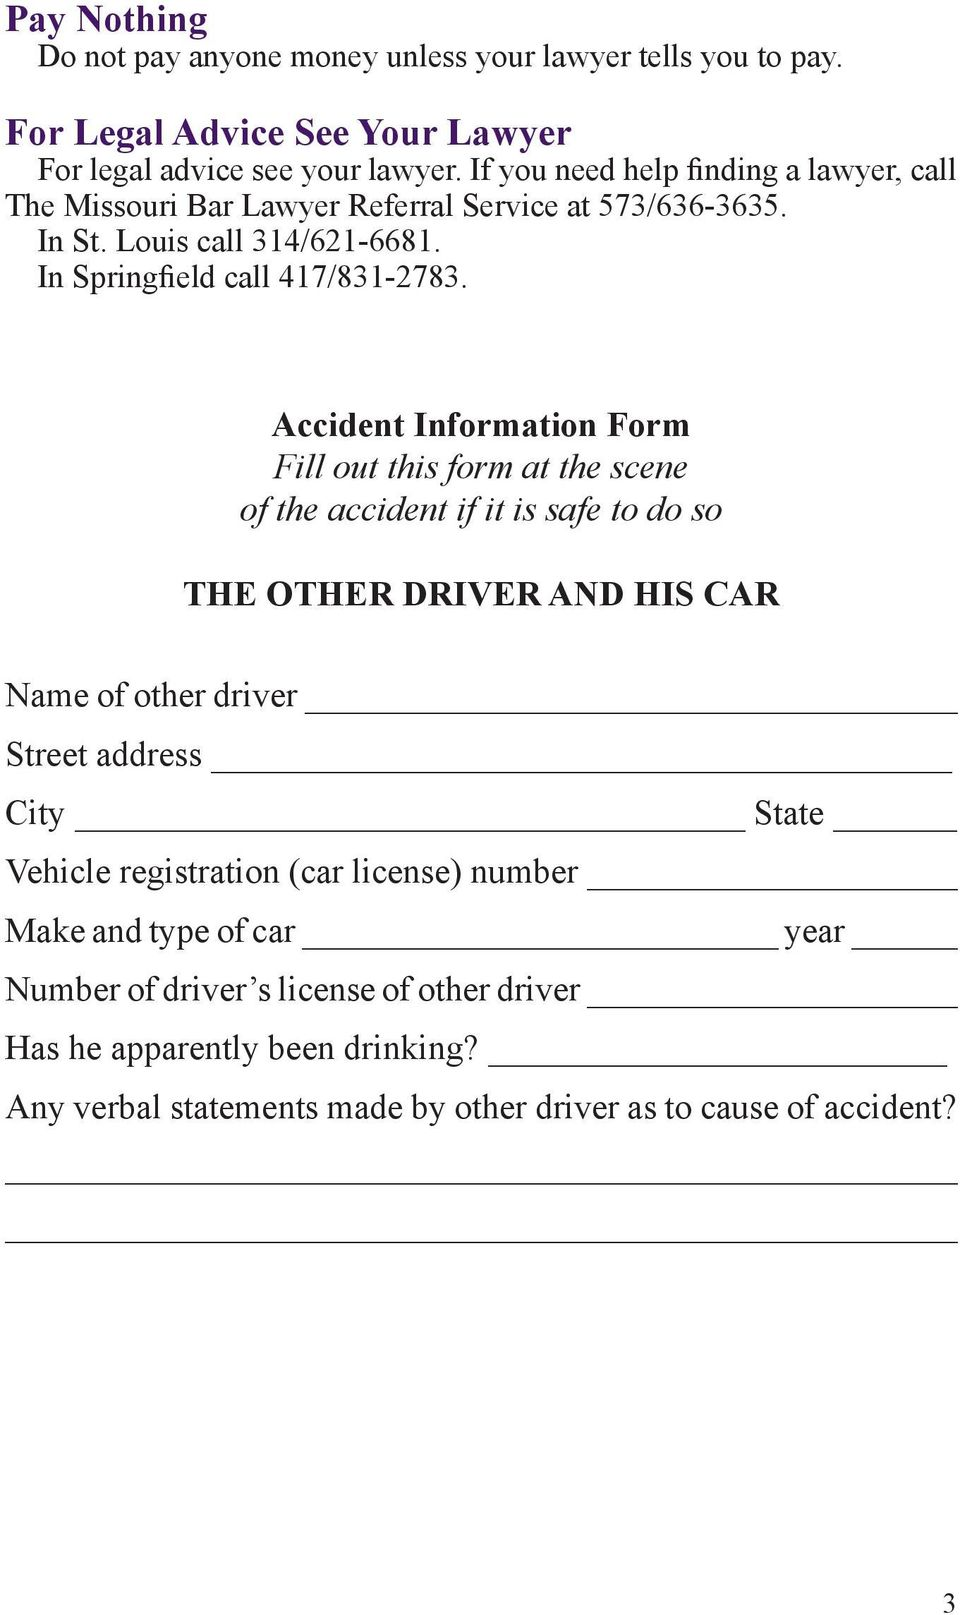 Accident Information Form Fill out this form at the scene of the accident if it is safe to do so THE OTHER DRIVER AND HIS CAR Name of other driver Street address City State